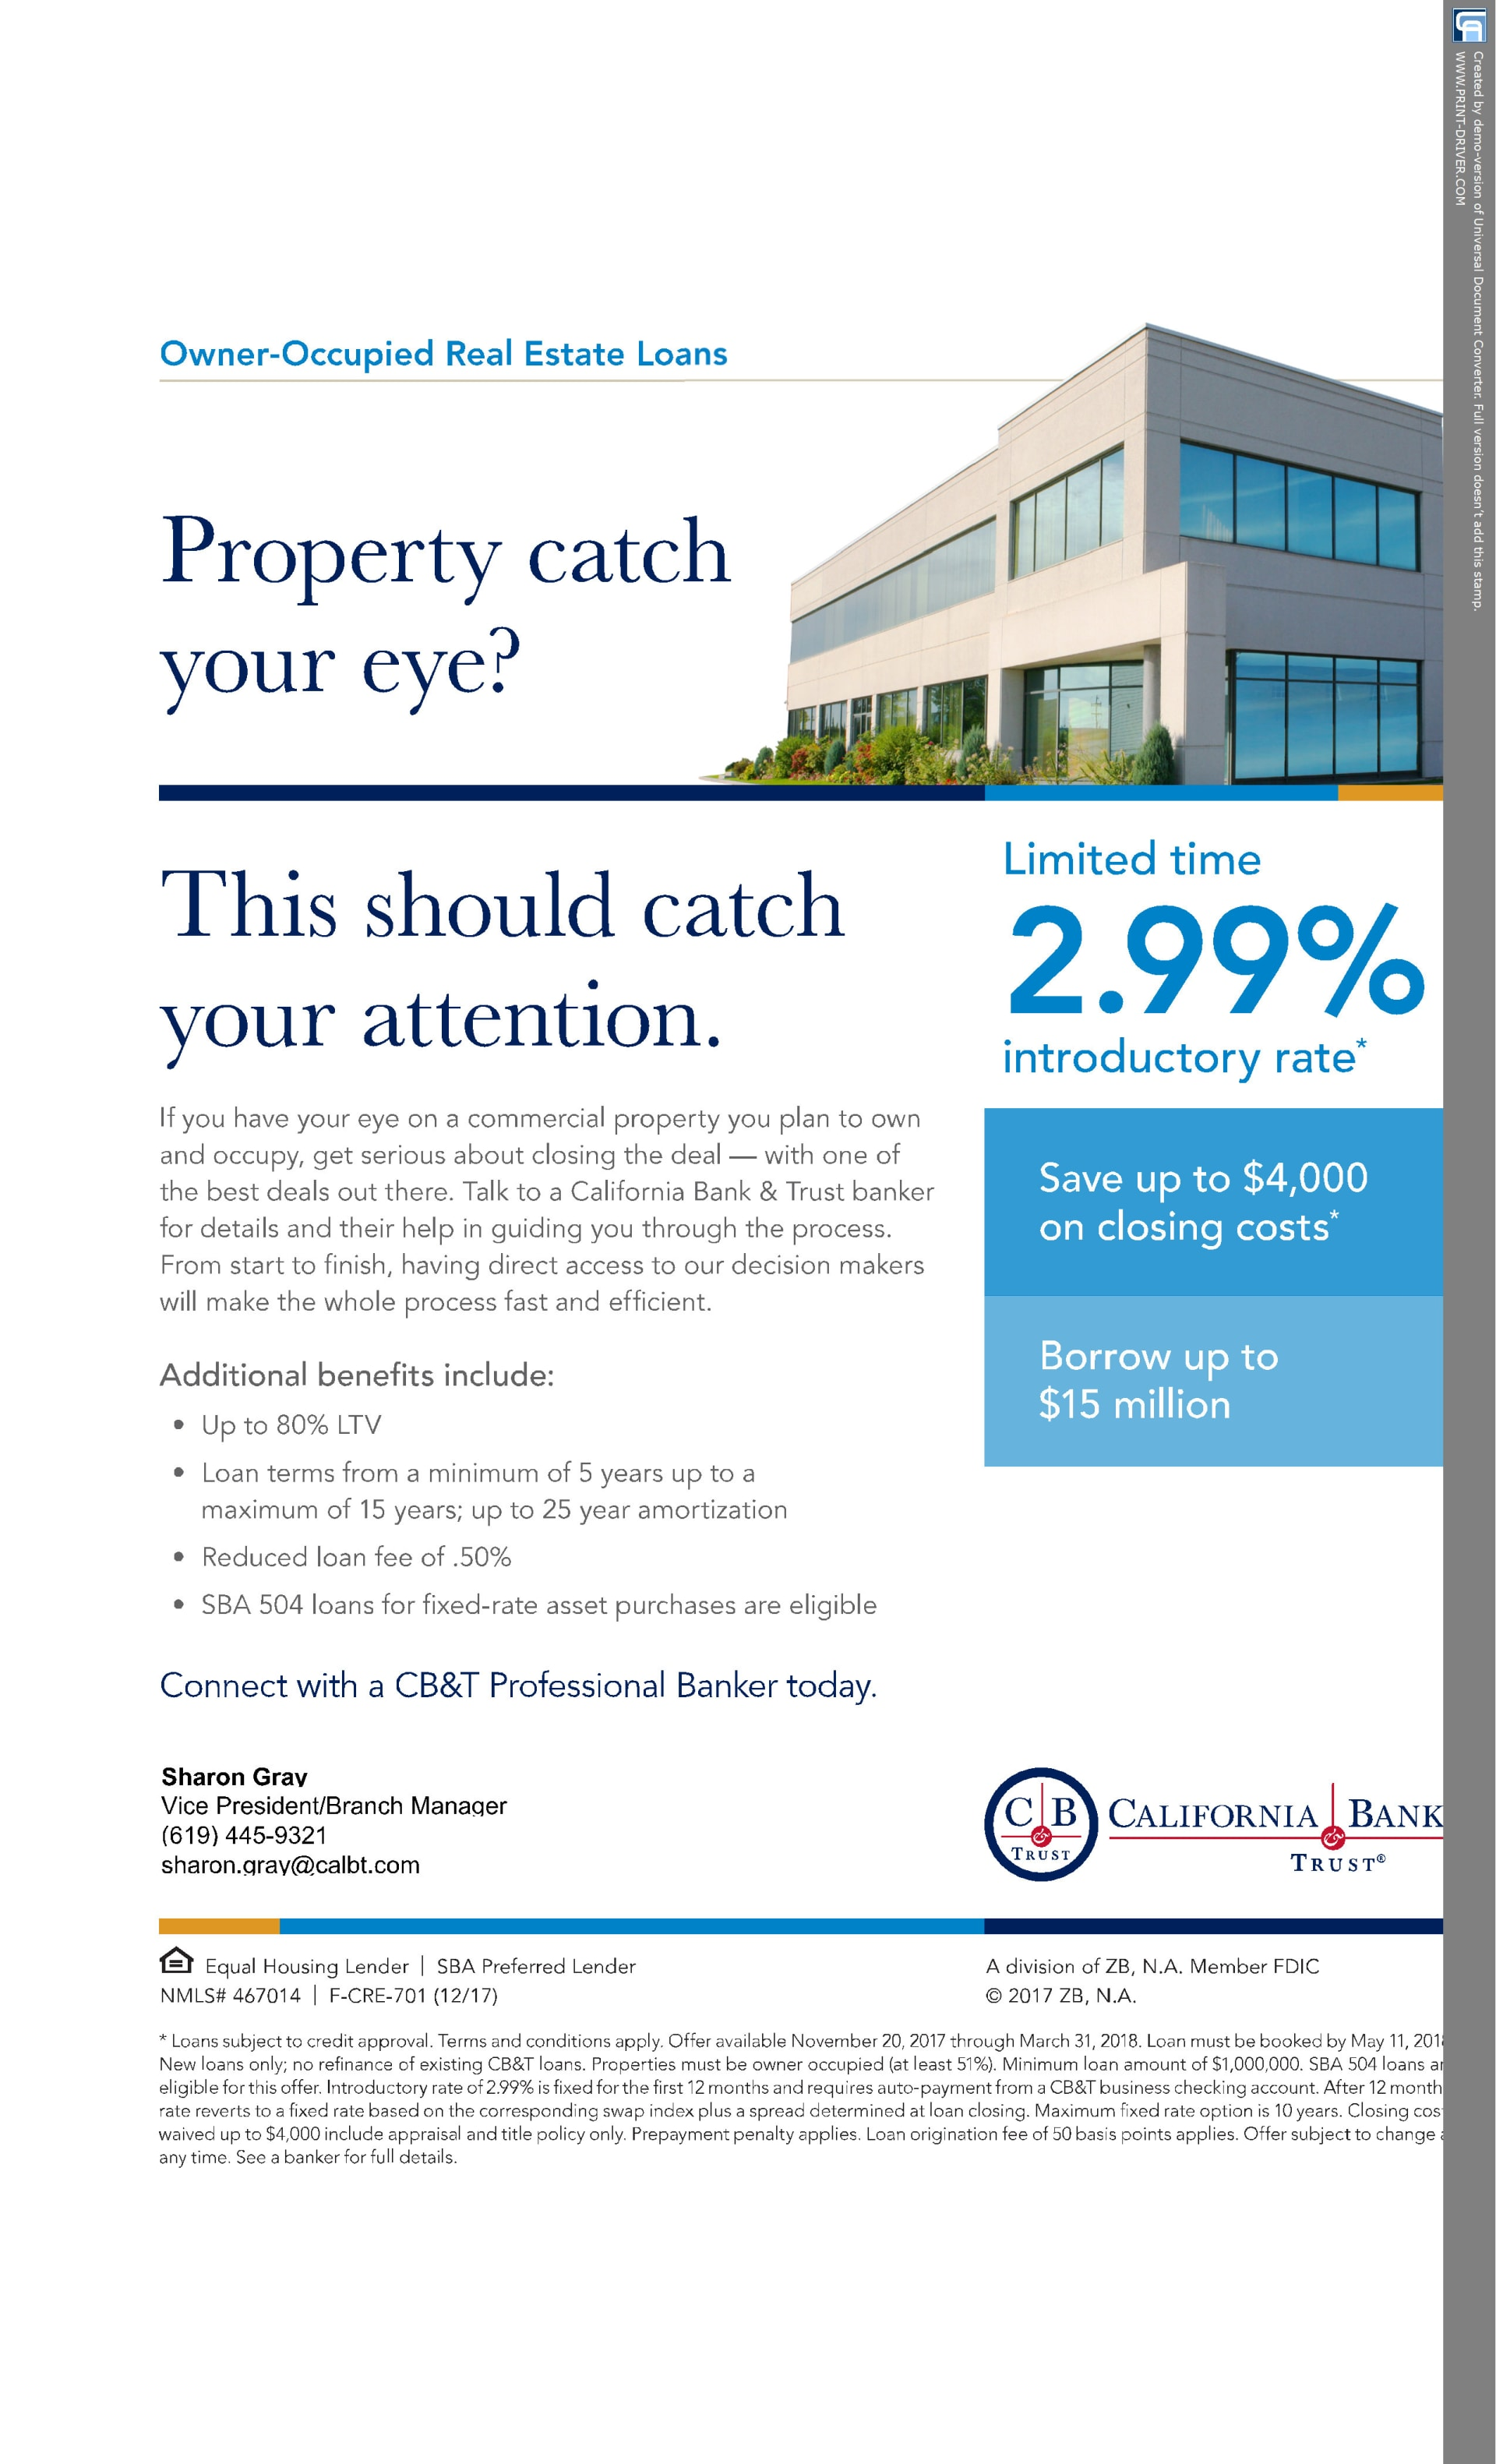 CA-BANK-Commercial-RE-Promotion-JPEG-w1920.jpg